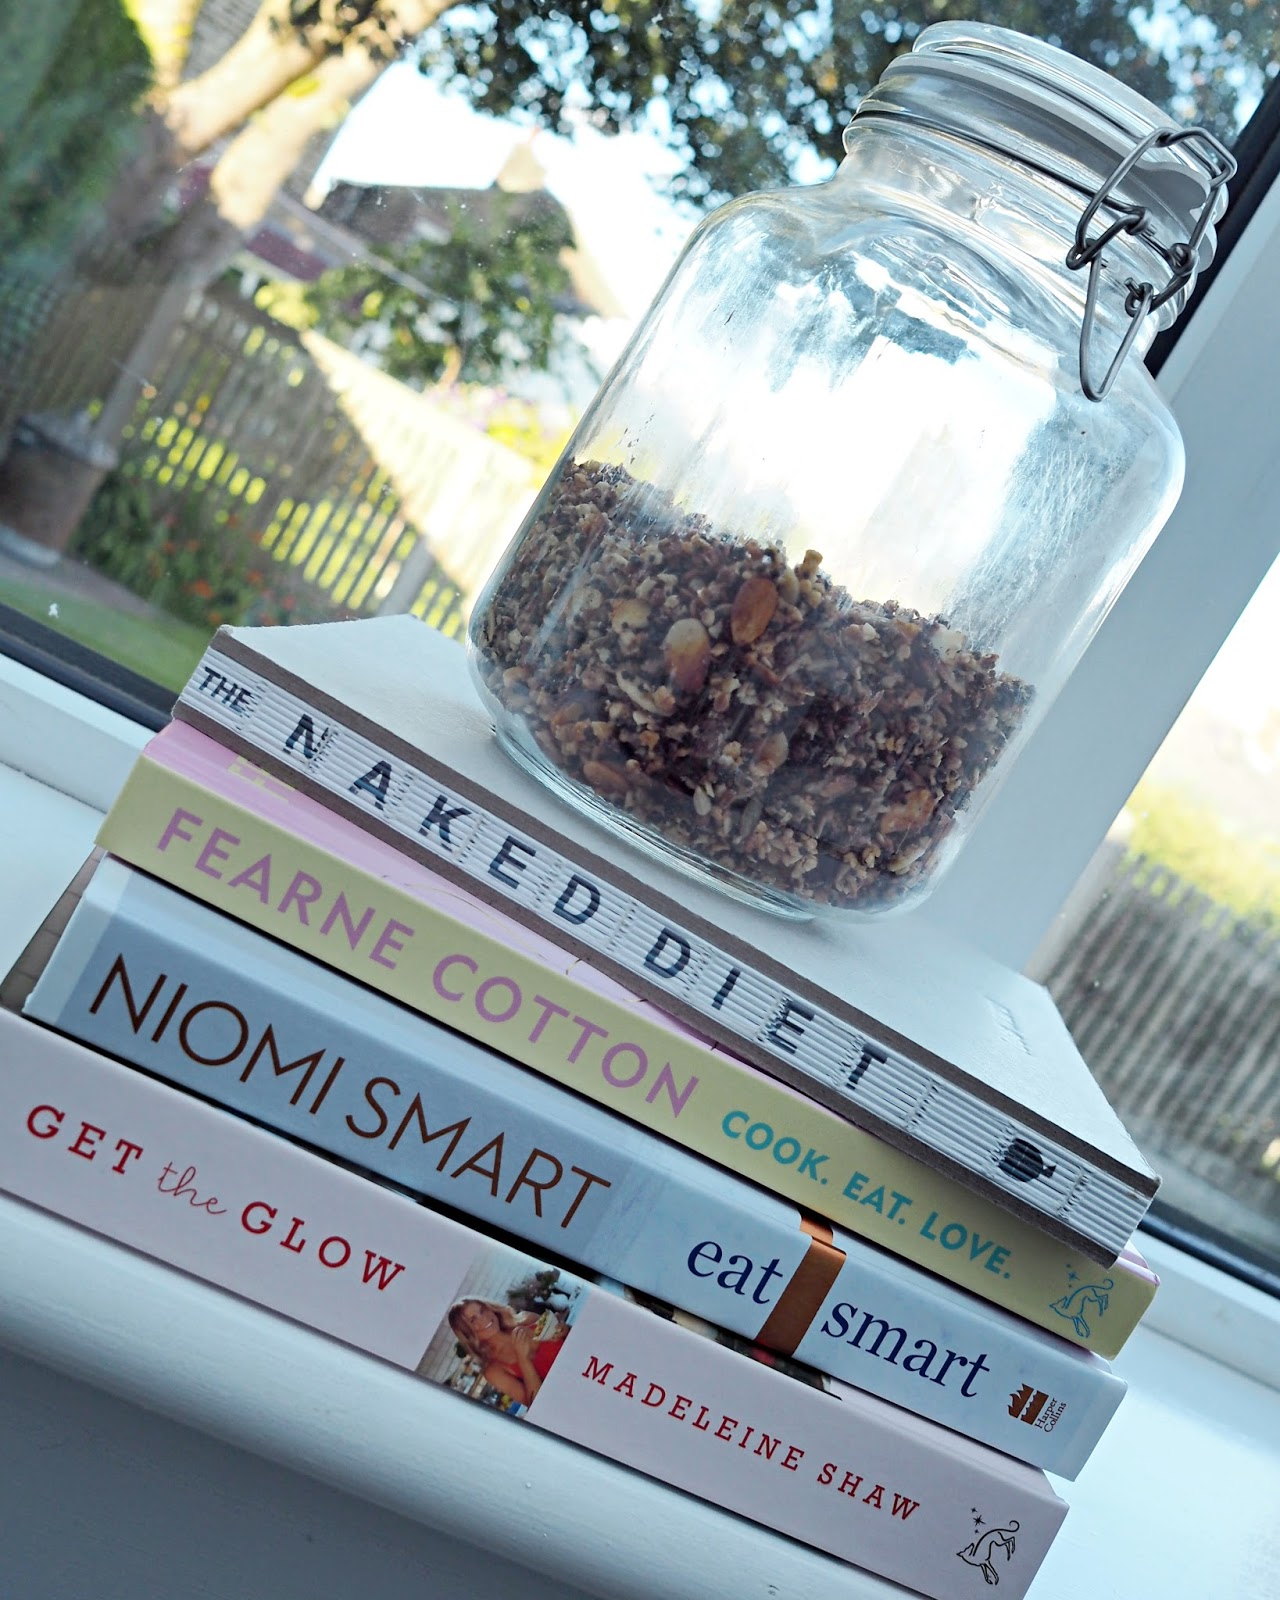 recipe books and granola